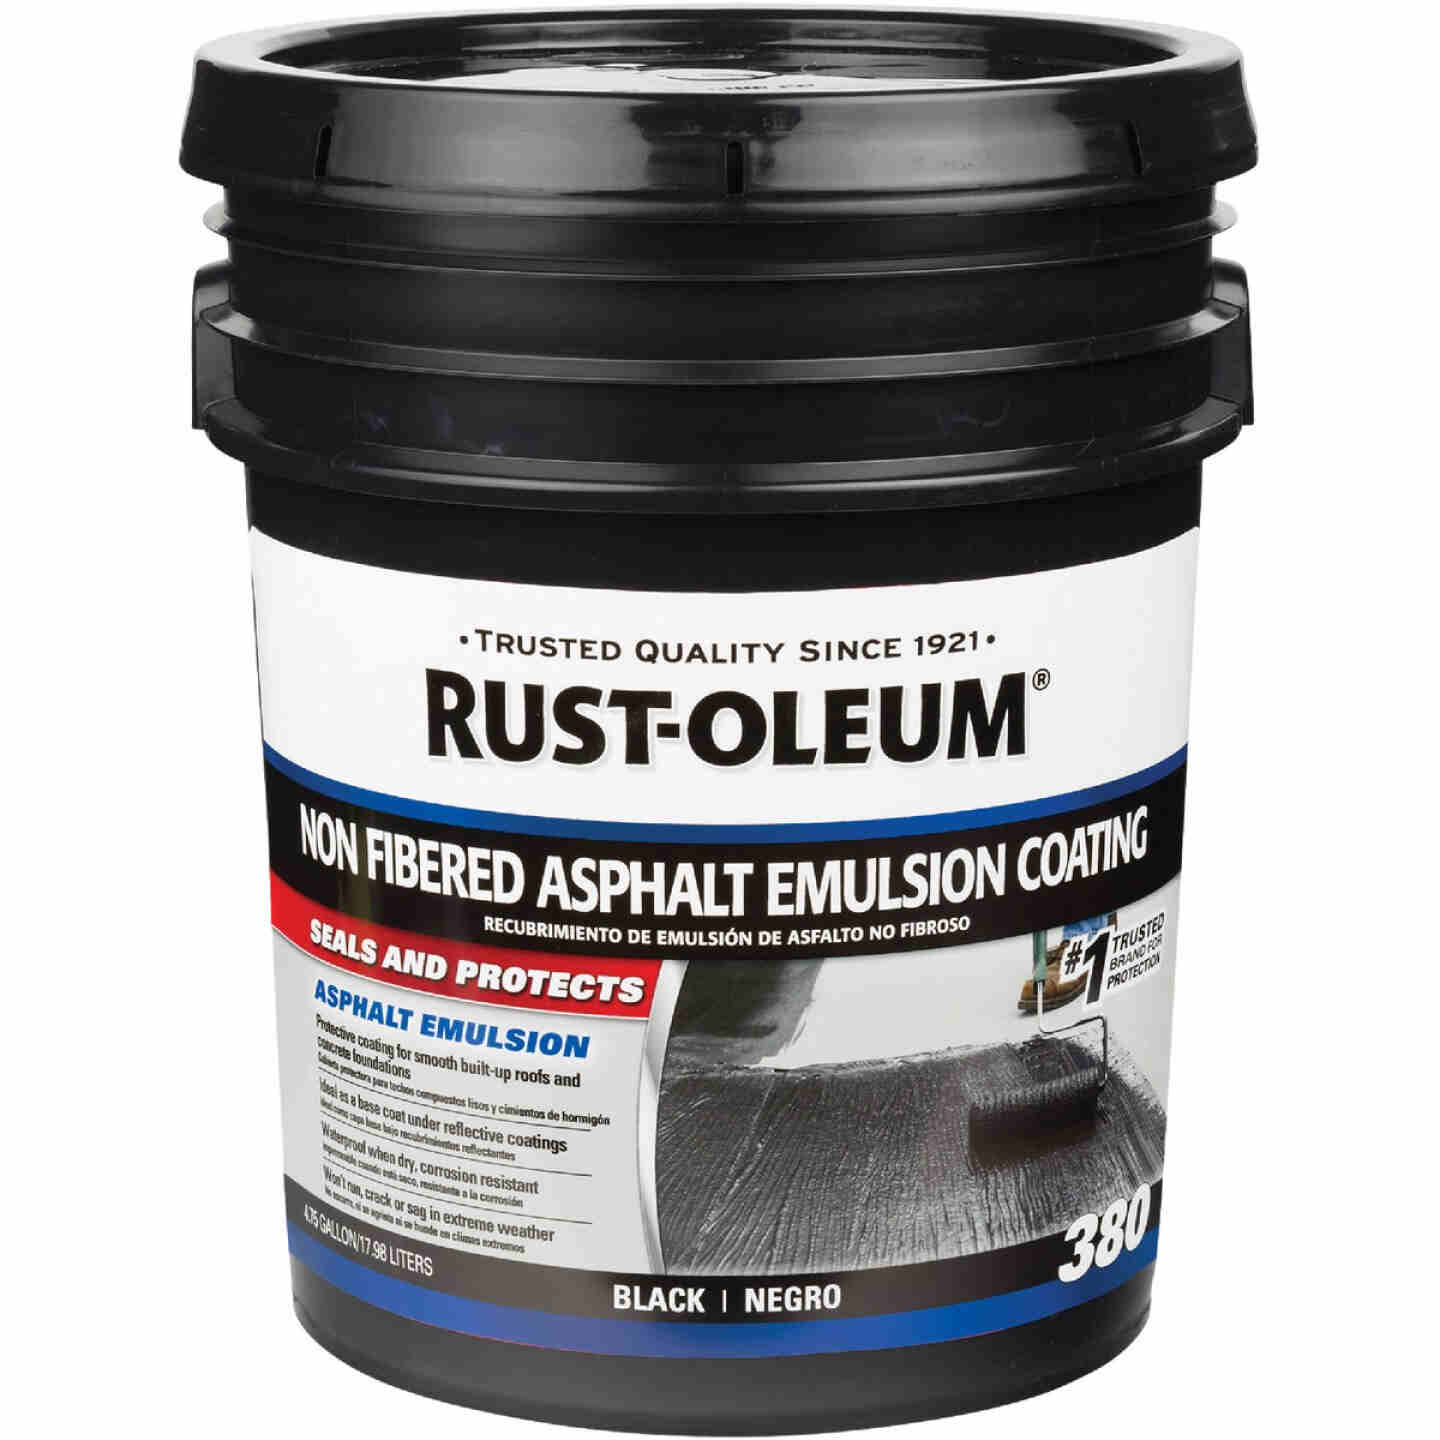 Rust-Oleum 380 5 Gal. Non-Fibered Asphalt Emulsion Coating Image 1